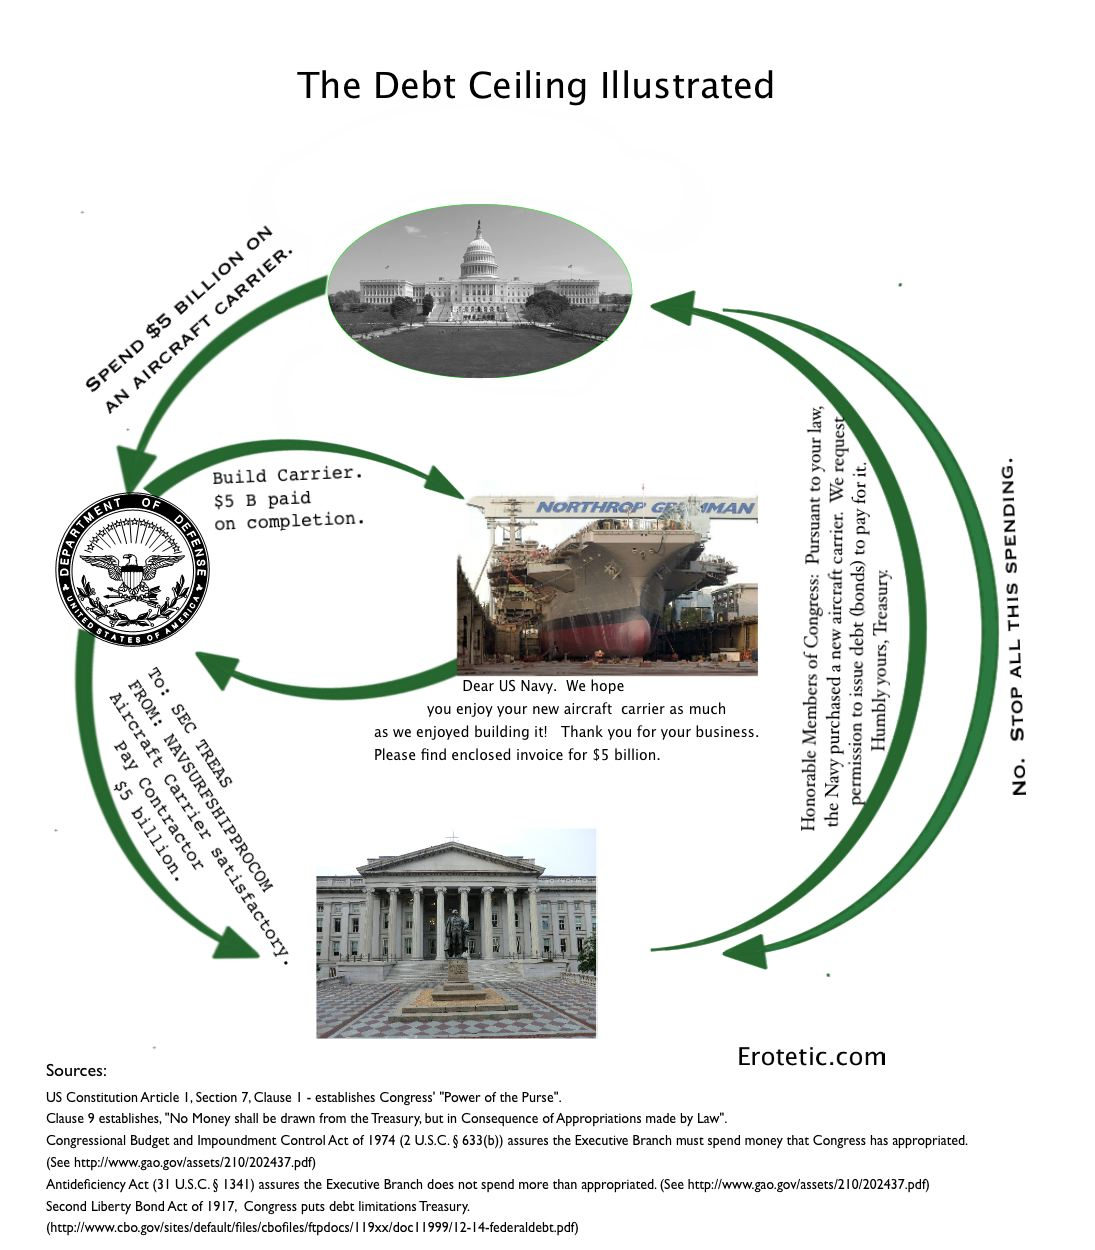 Debt ceiling illustrated1